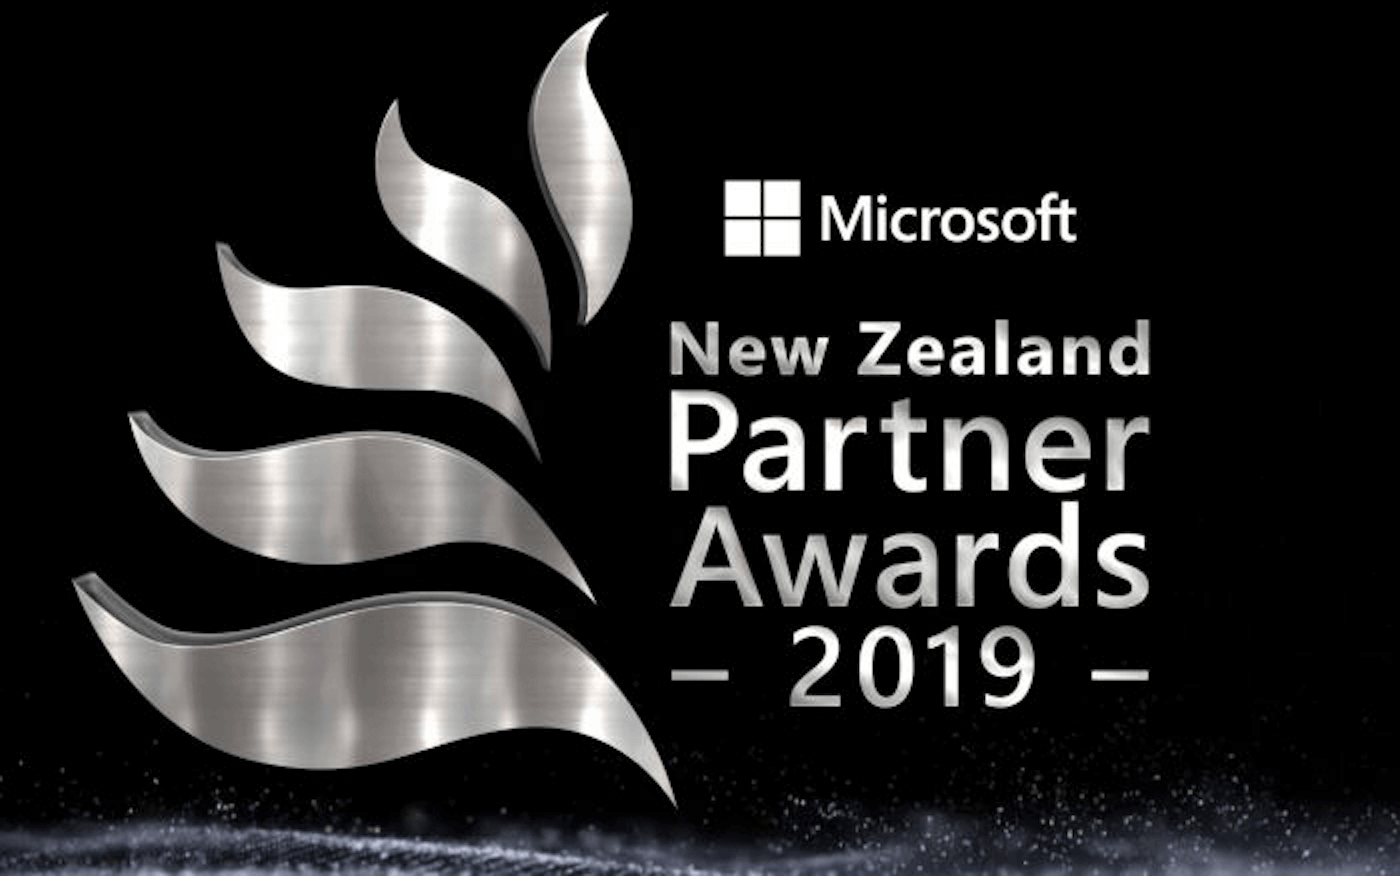 Microsoft Engaging Customers Award: finalist for second year running